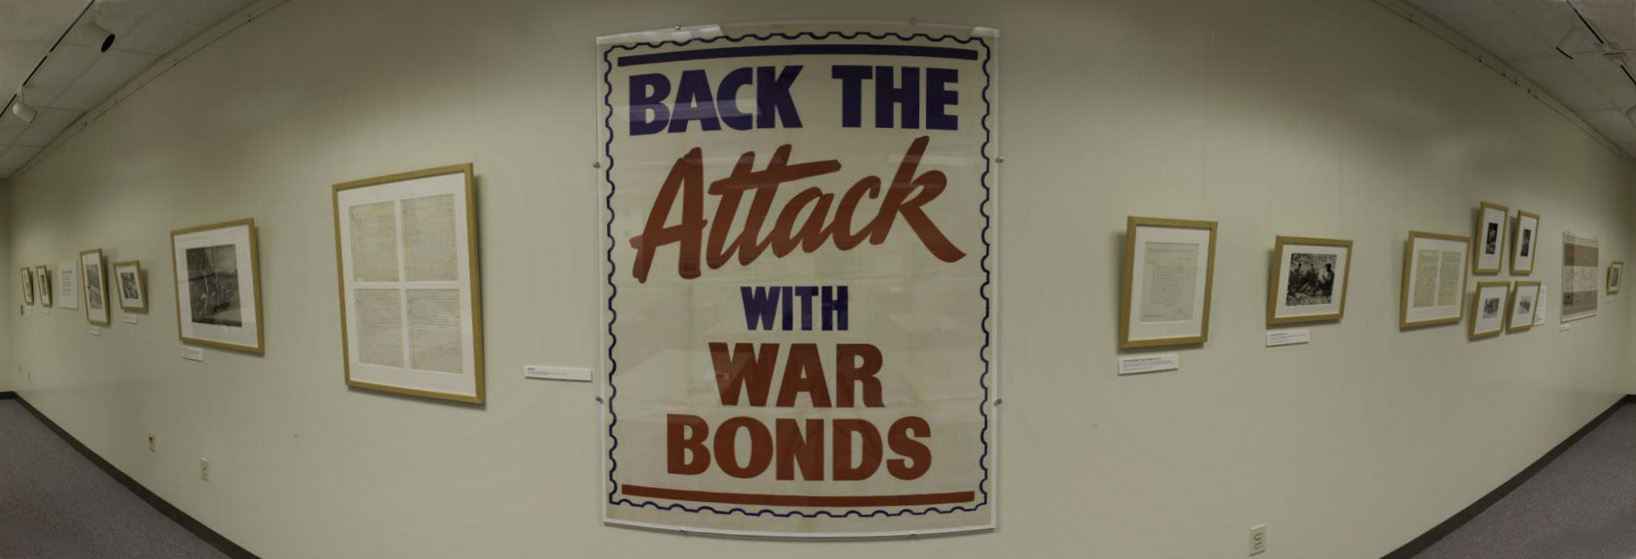 "Poster with text ""Back the attack with war bonds"""